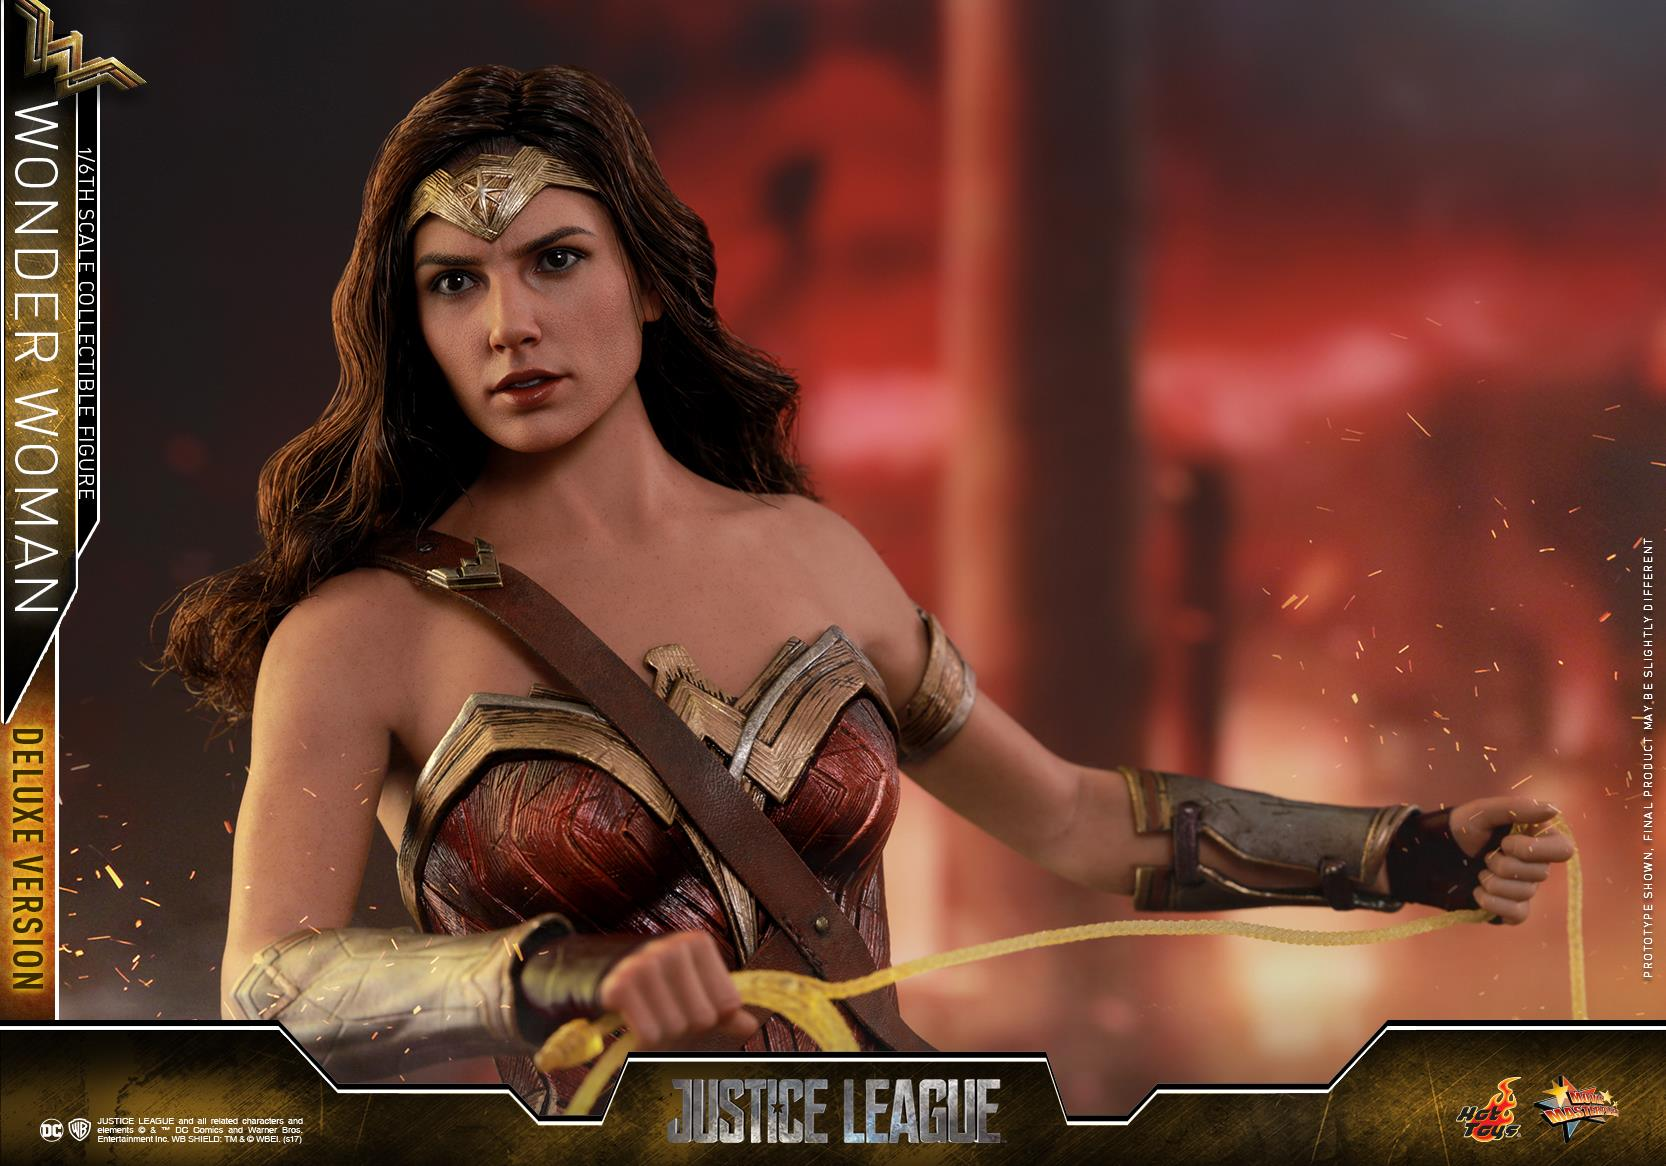 Hot Toys Justice League Wonder Woman Figure Up For Pre-Order-1824